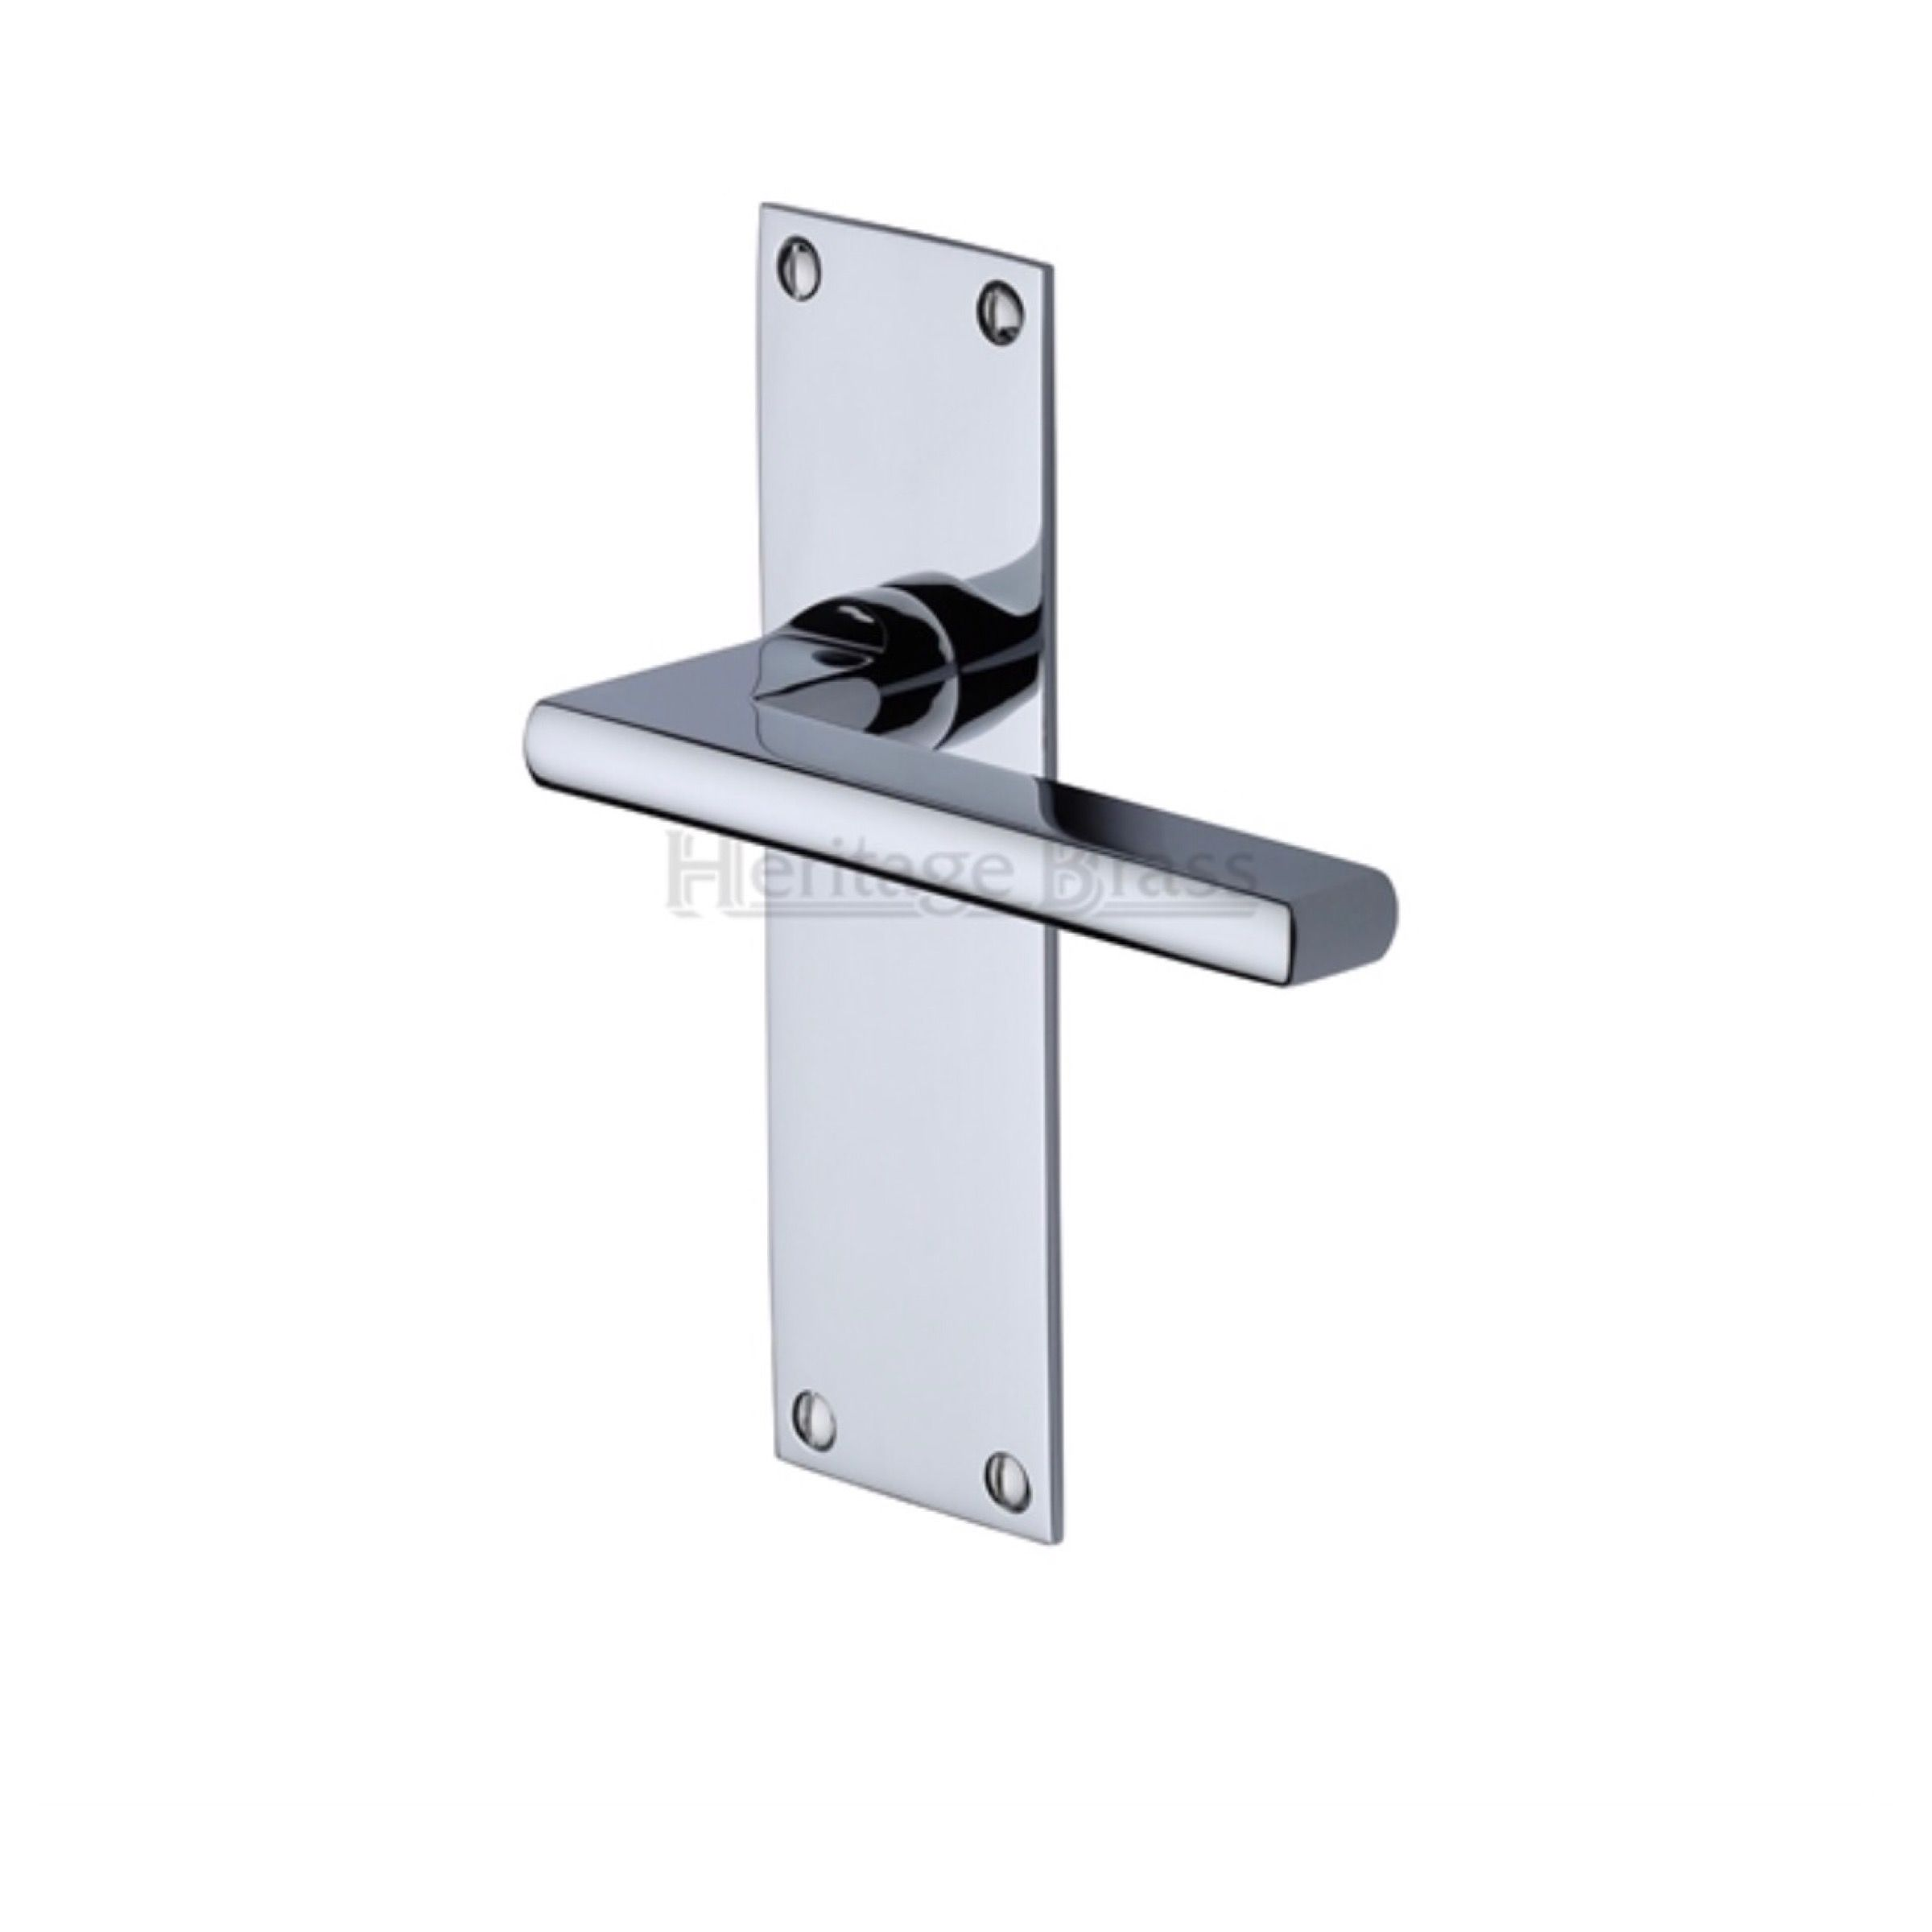 Trident Low Profile Profile Door Handles On Backplate   Dimensions 170mm X  50mm, Supplied In Pairs, Supplied With Spindle U0026 Screws A 38mm Bore Will Be  ...